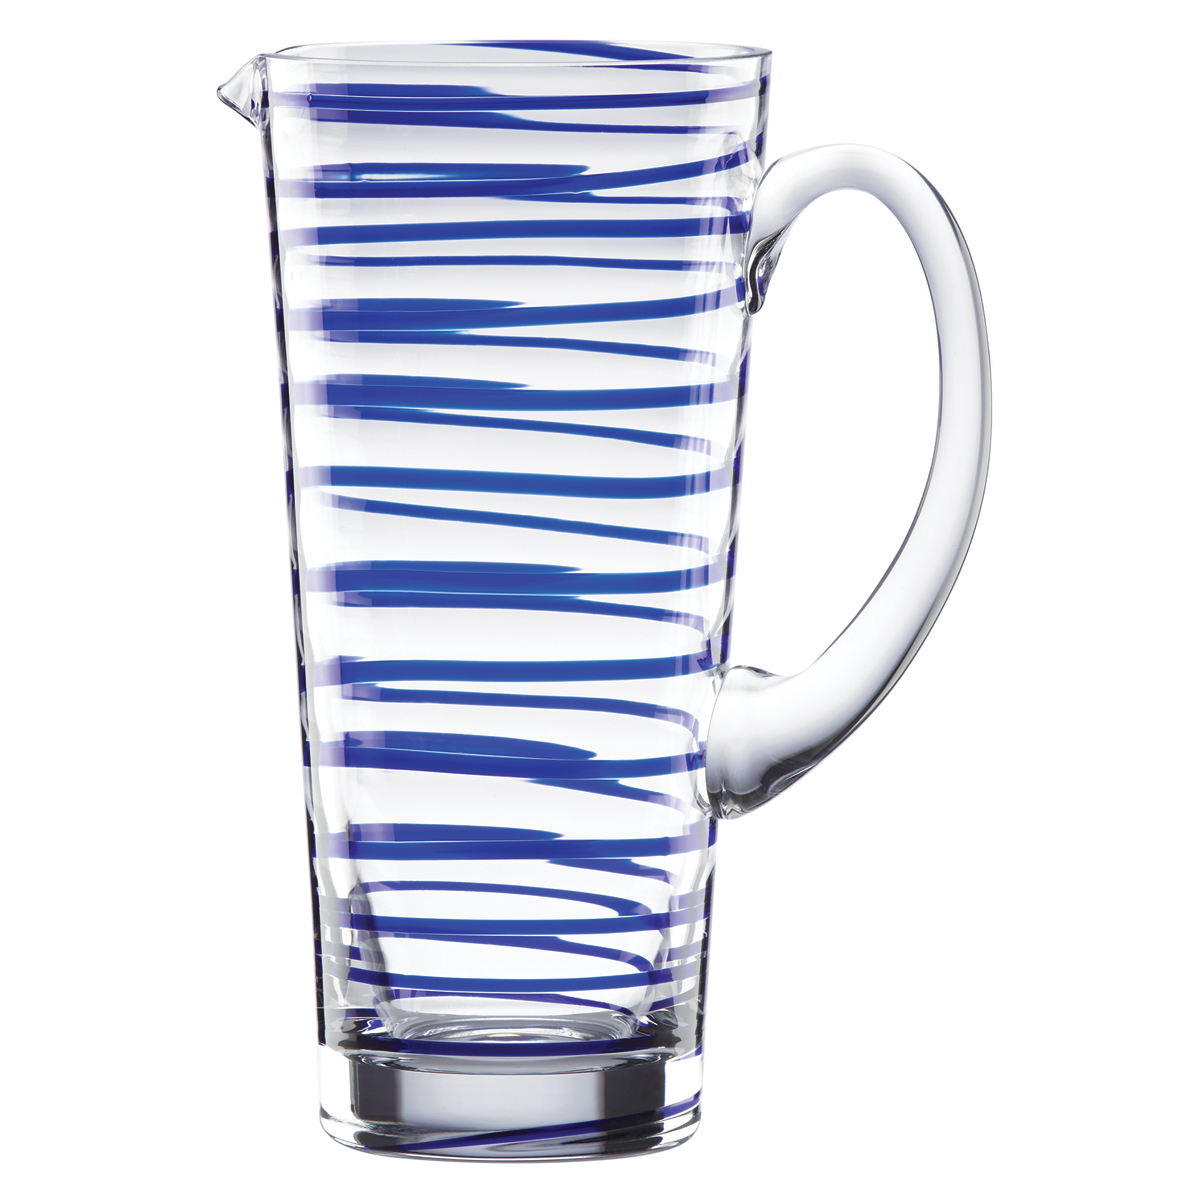 Kate Spade New York, Lenox Charlotte Street Crystal Pitcher